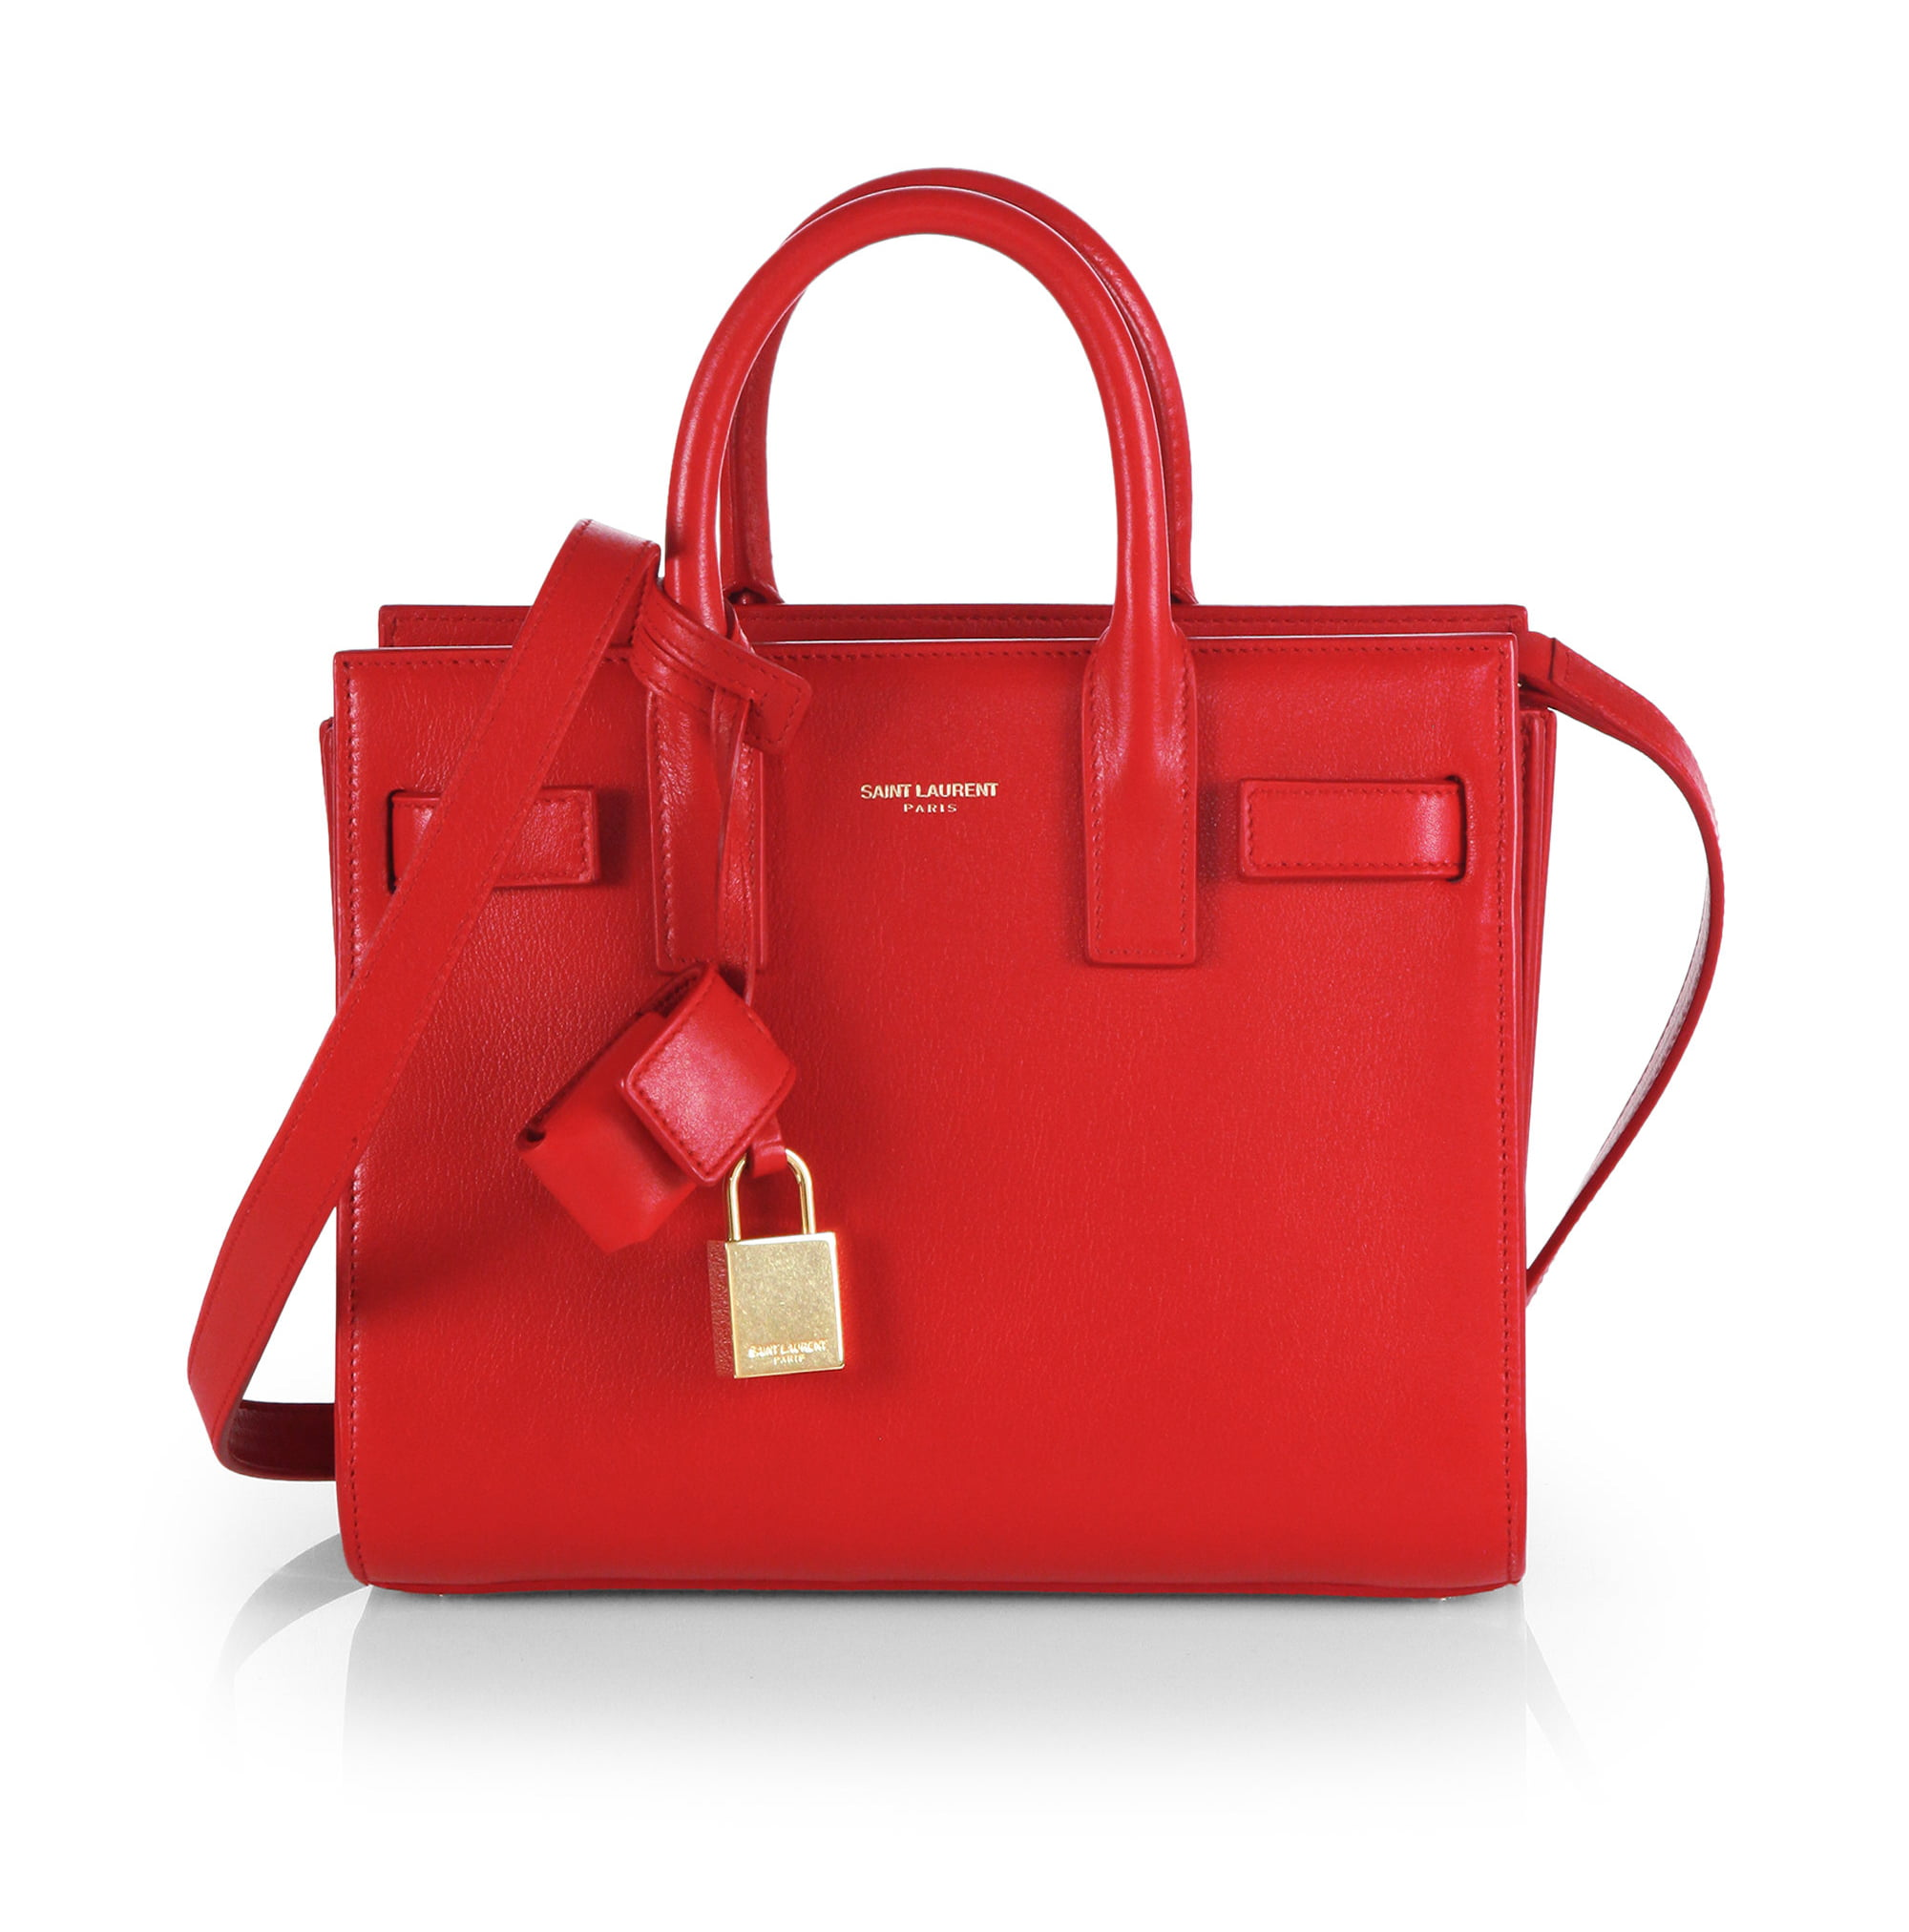 Sac Laurent 0 De Product Jour Tote Mini Red 21296118 Saint 1 wtq4T6q